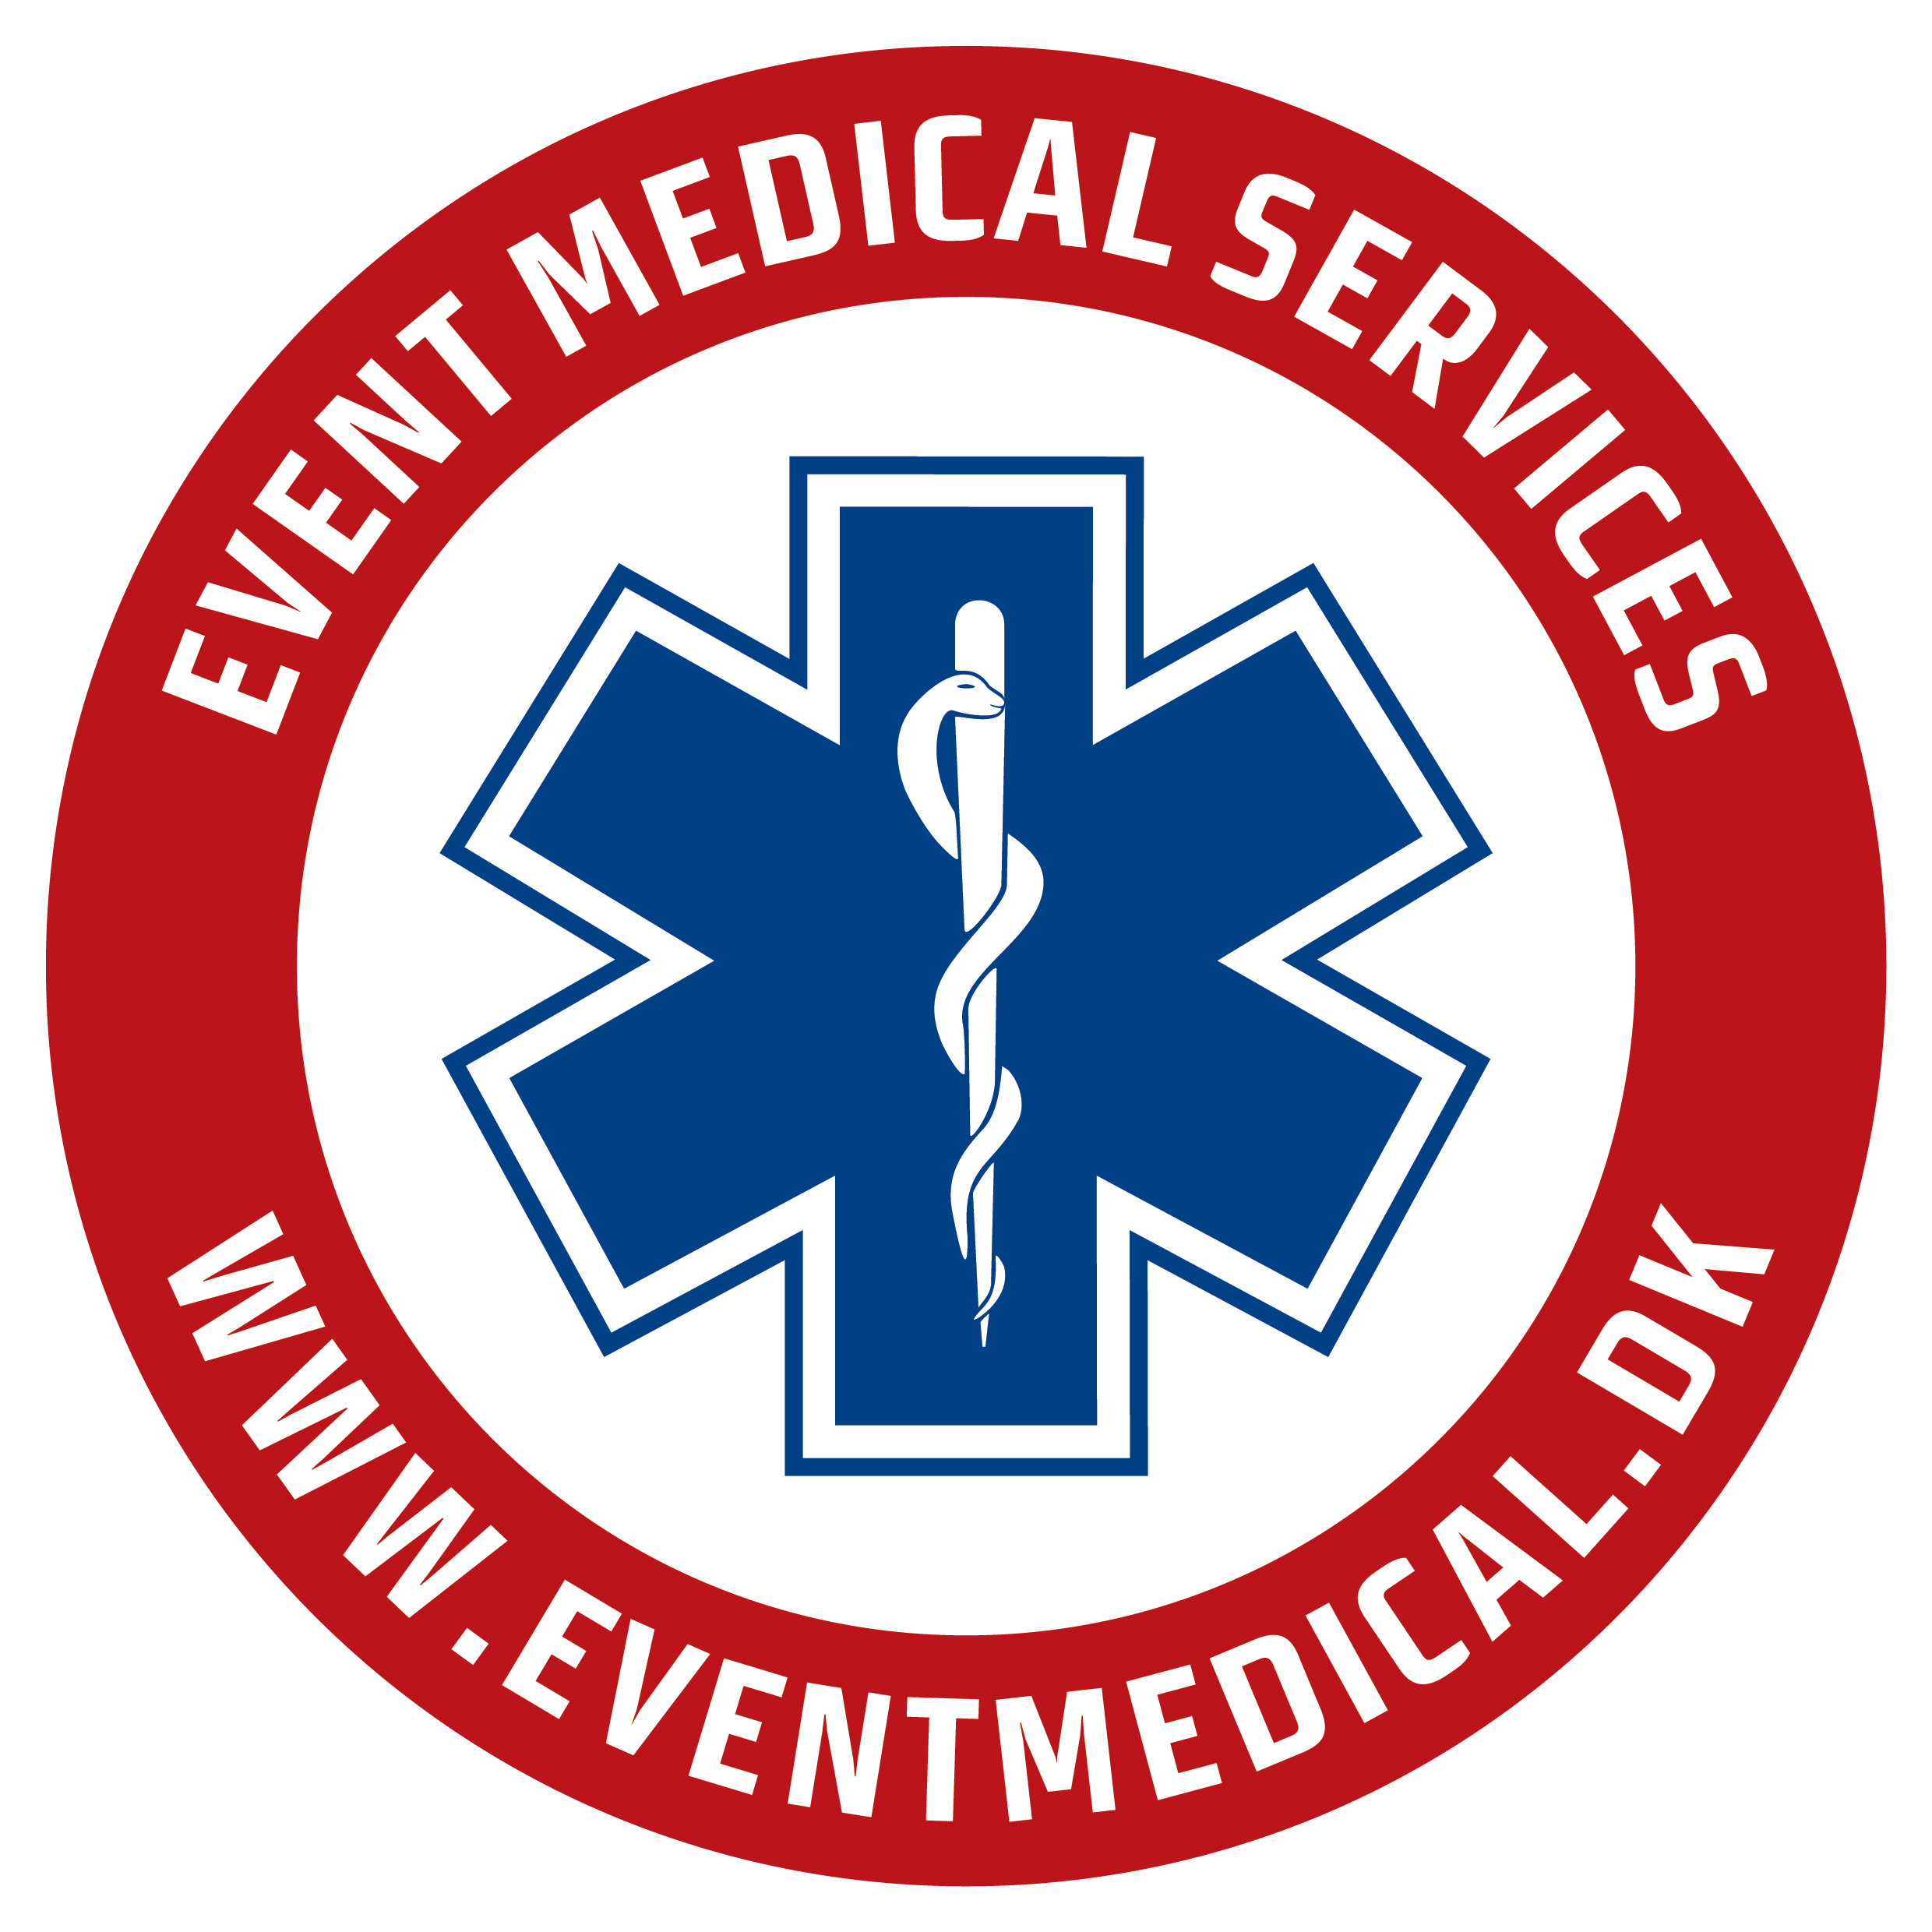 Event Medical Serivces ApS